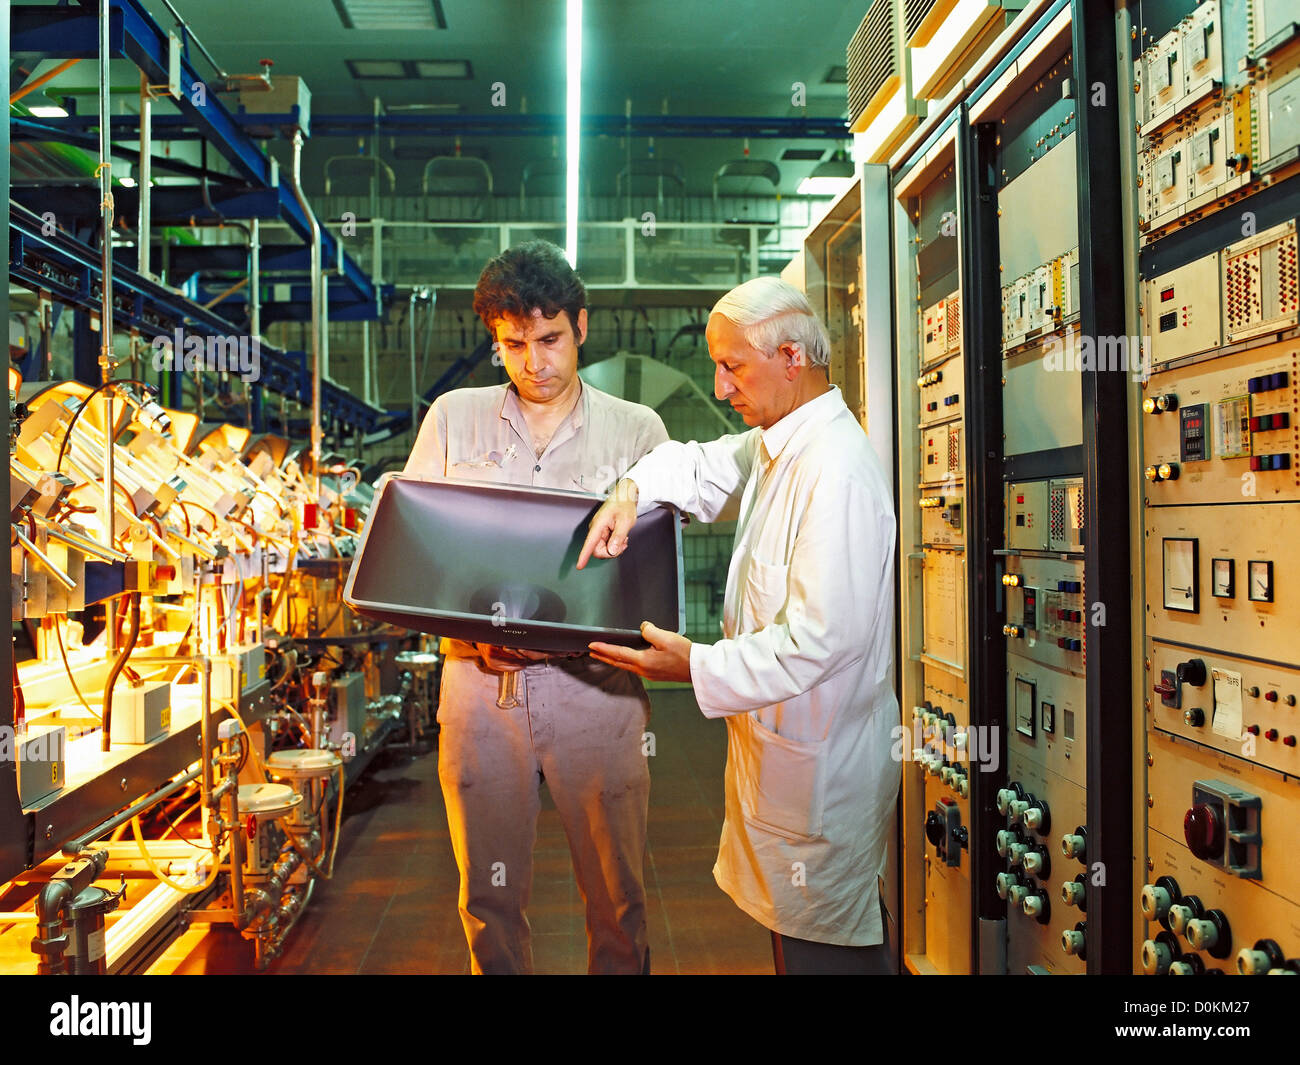 Technicians discussing manufacturing issues at a glass manufacturing plant. - Stock Image